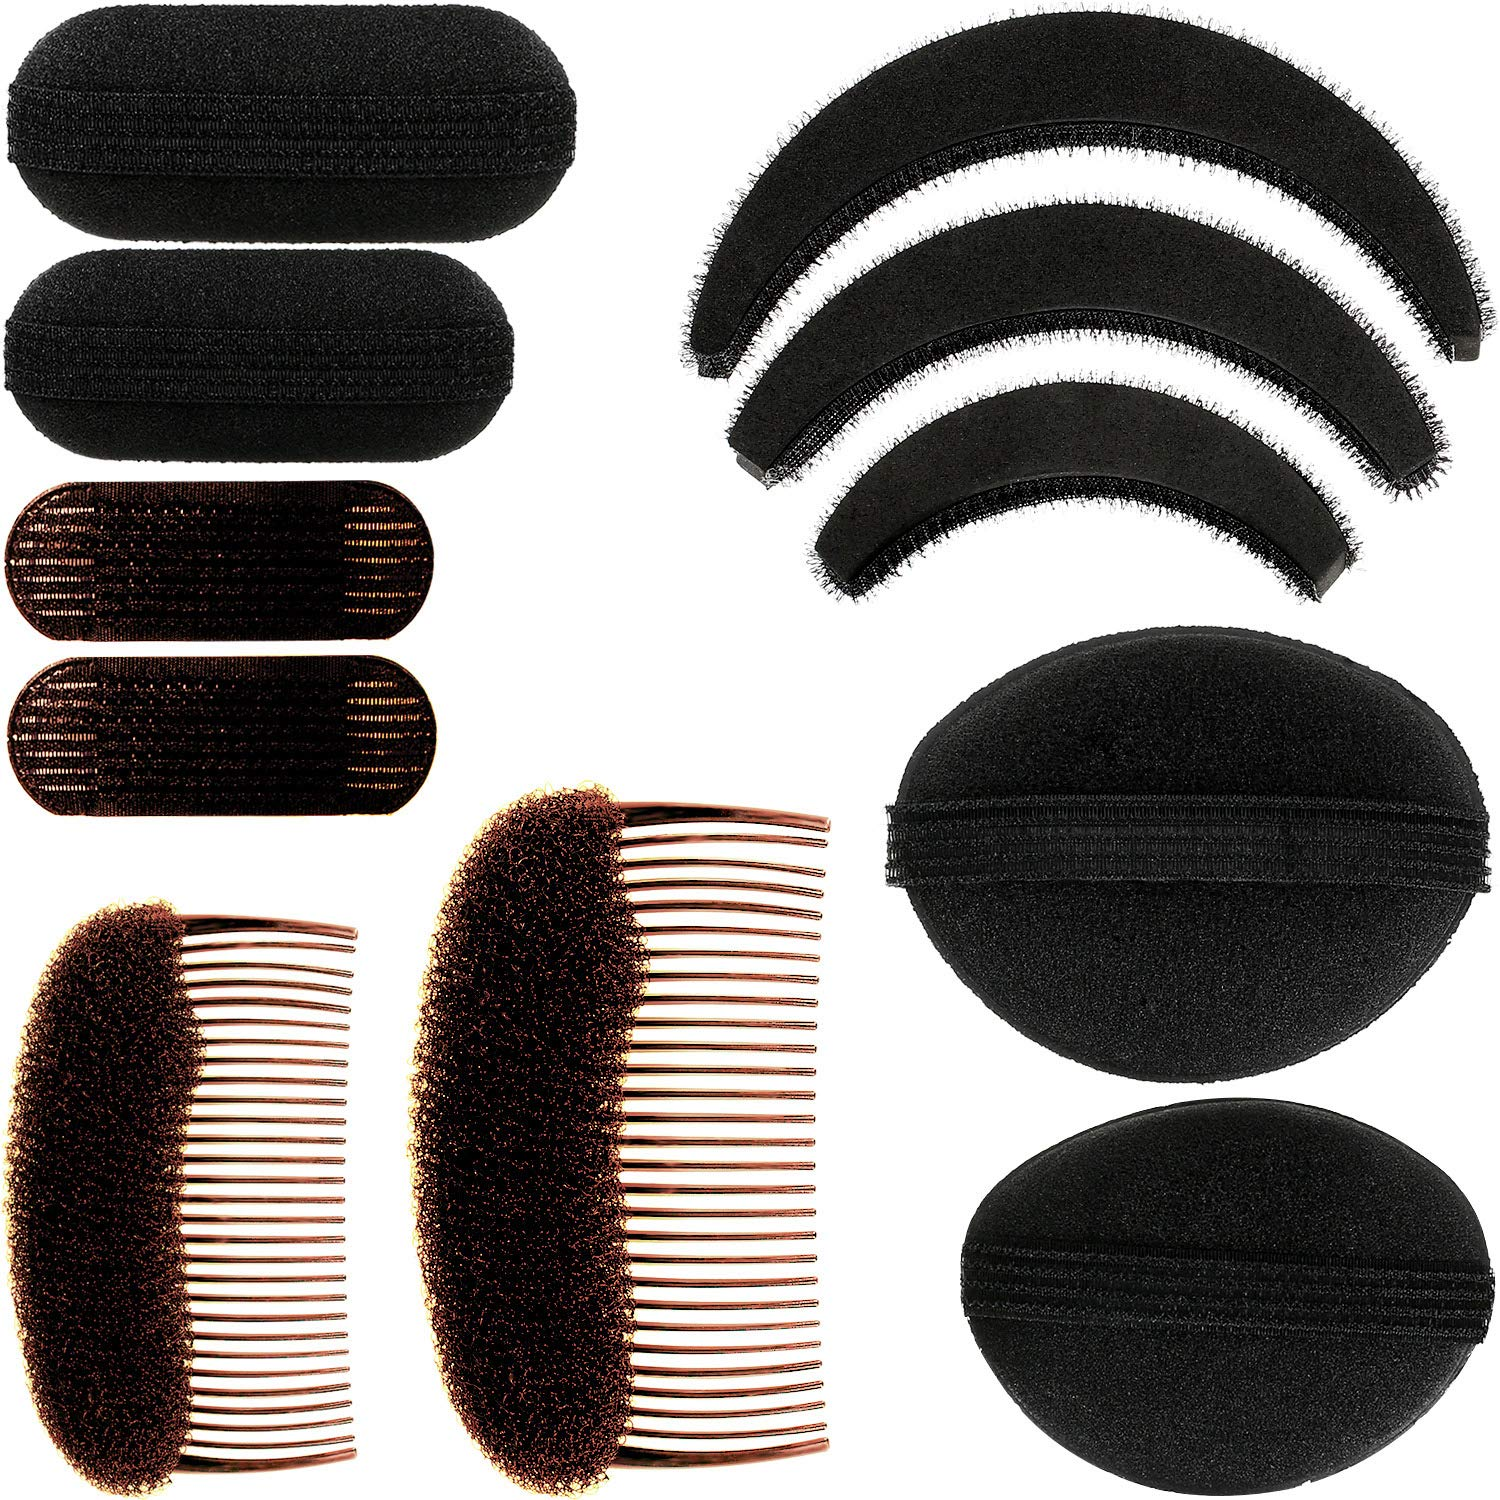 11 Pieces Women Sponge Volume Bump Inserts Hair Bases Hair Styling Tools Hair Bump Up Combs Clips Black Sponge Hair Accessories for Women DIY Hairstyles (Black): Beauty